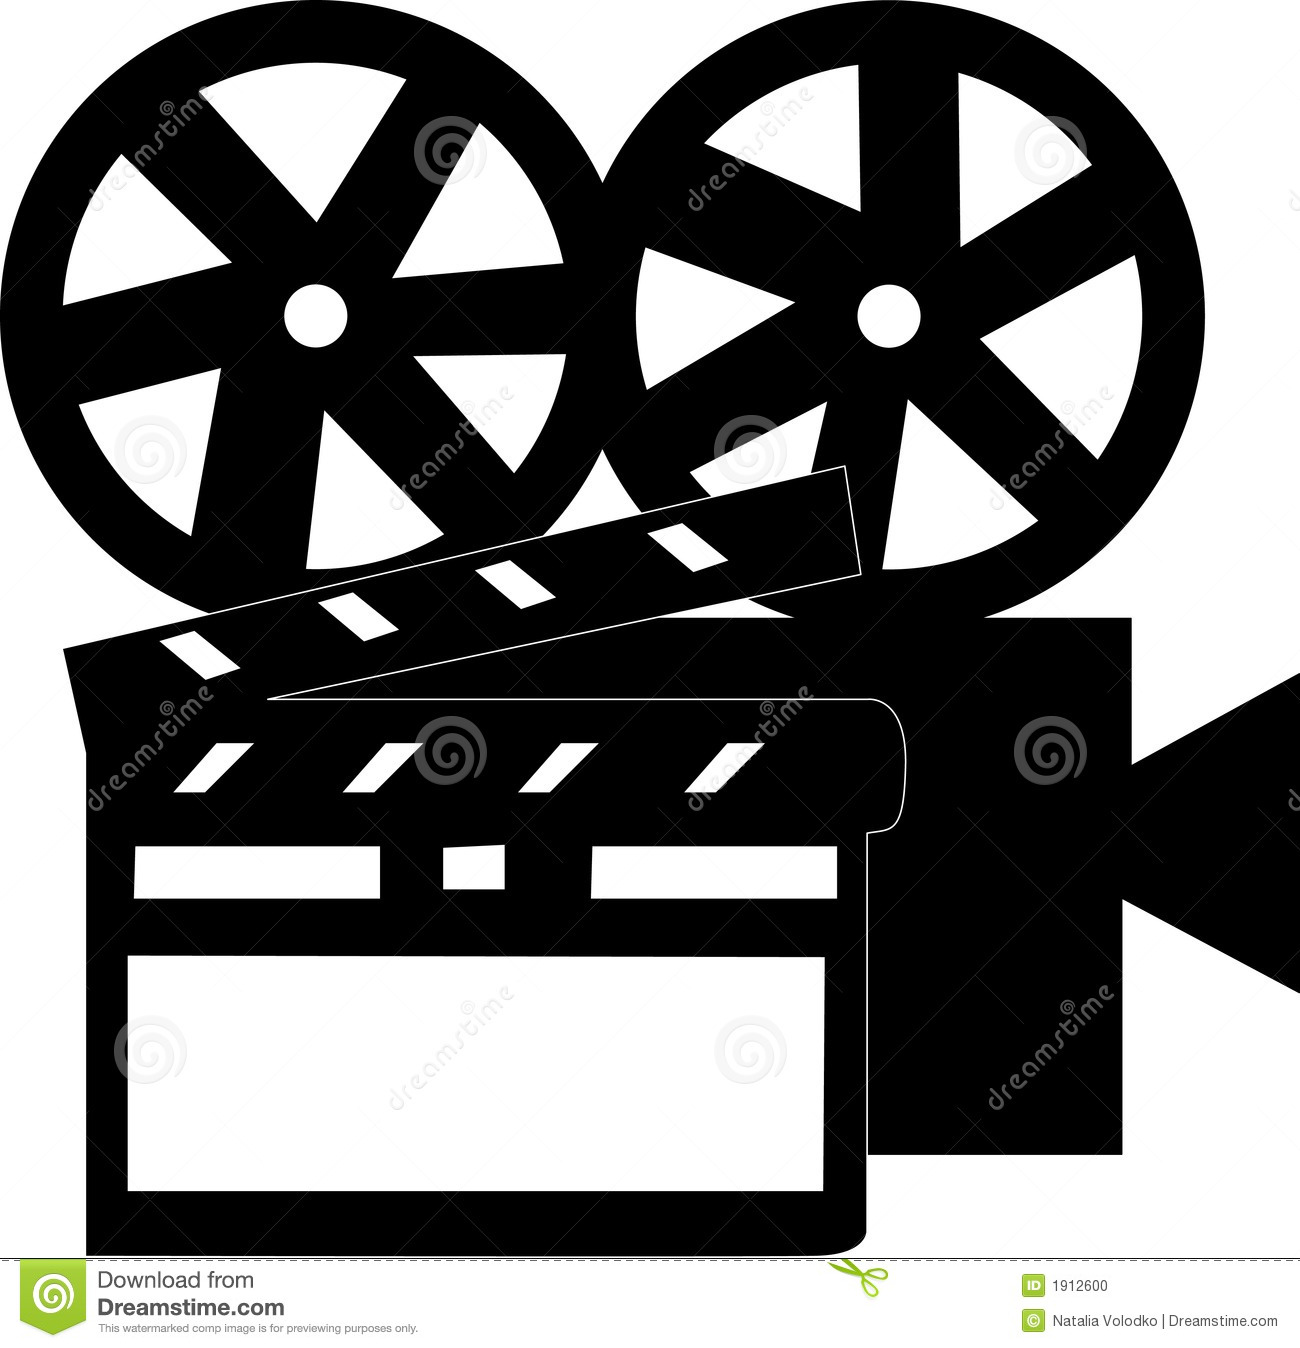 Clip Art Movie Camera Clip Art old movie camera clipart kid film clip art clap board with camera